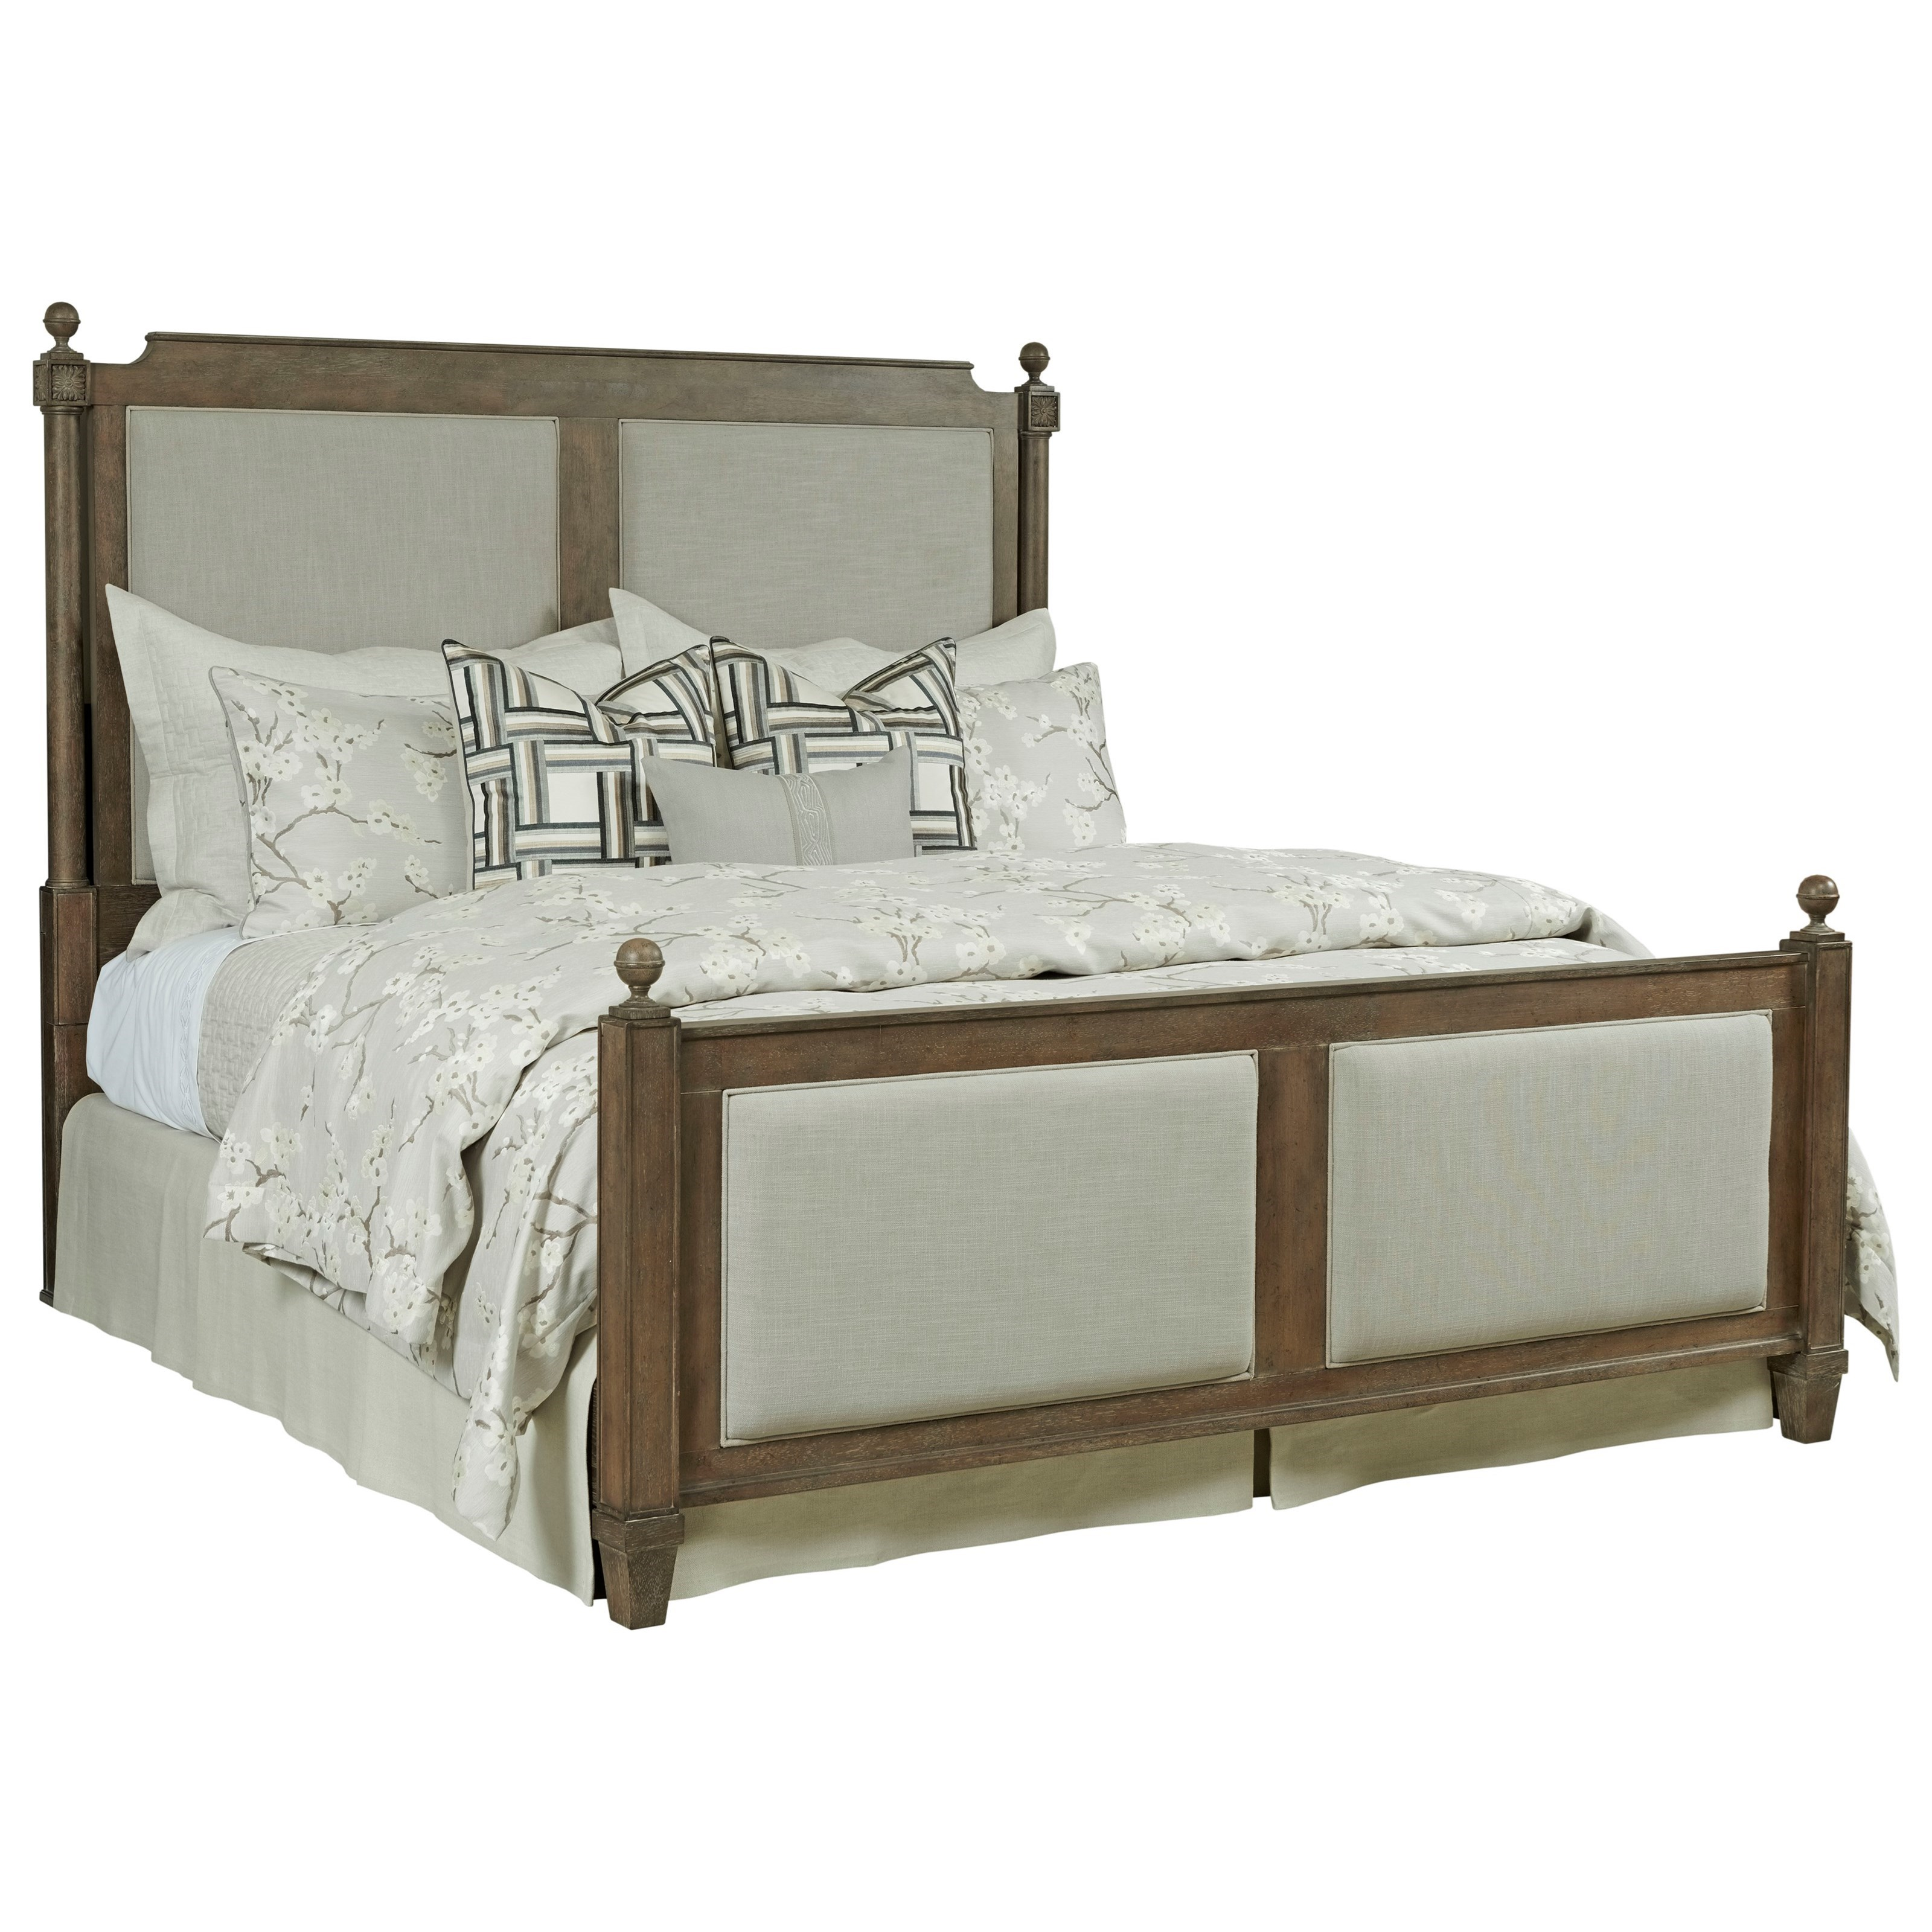 Anson Upholstered King Bed by American Drew at Northeast Factory Direct